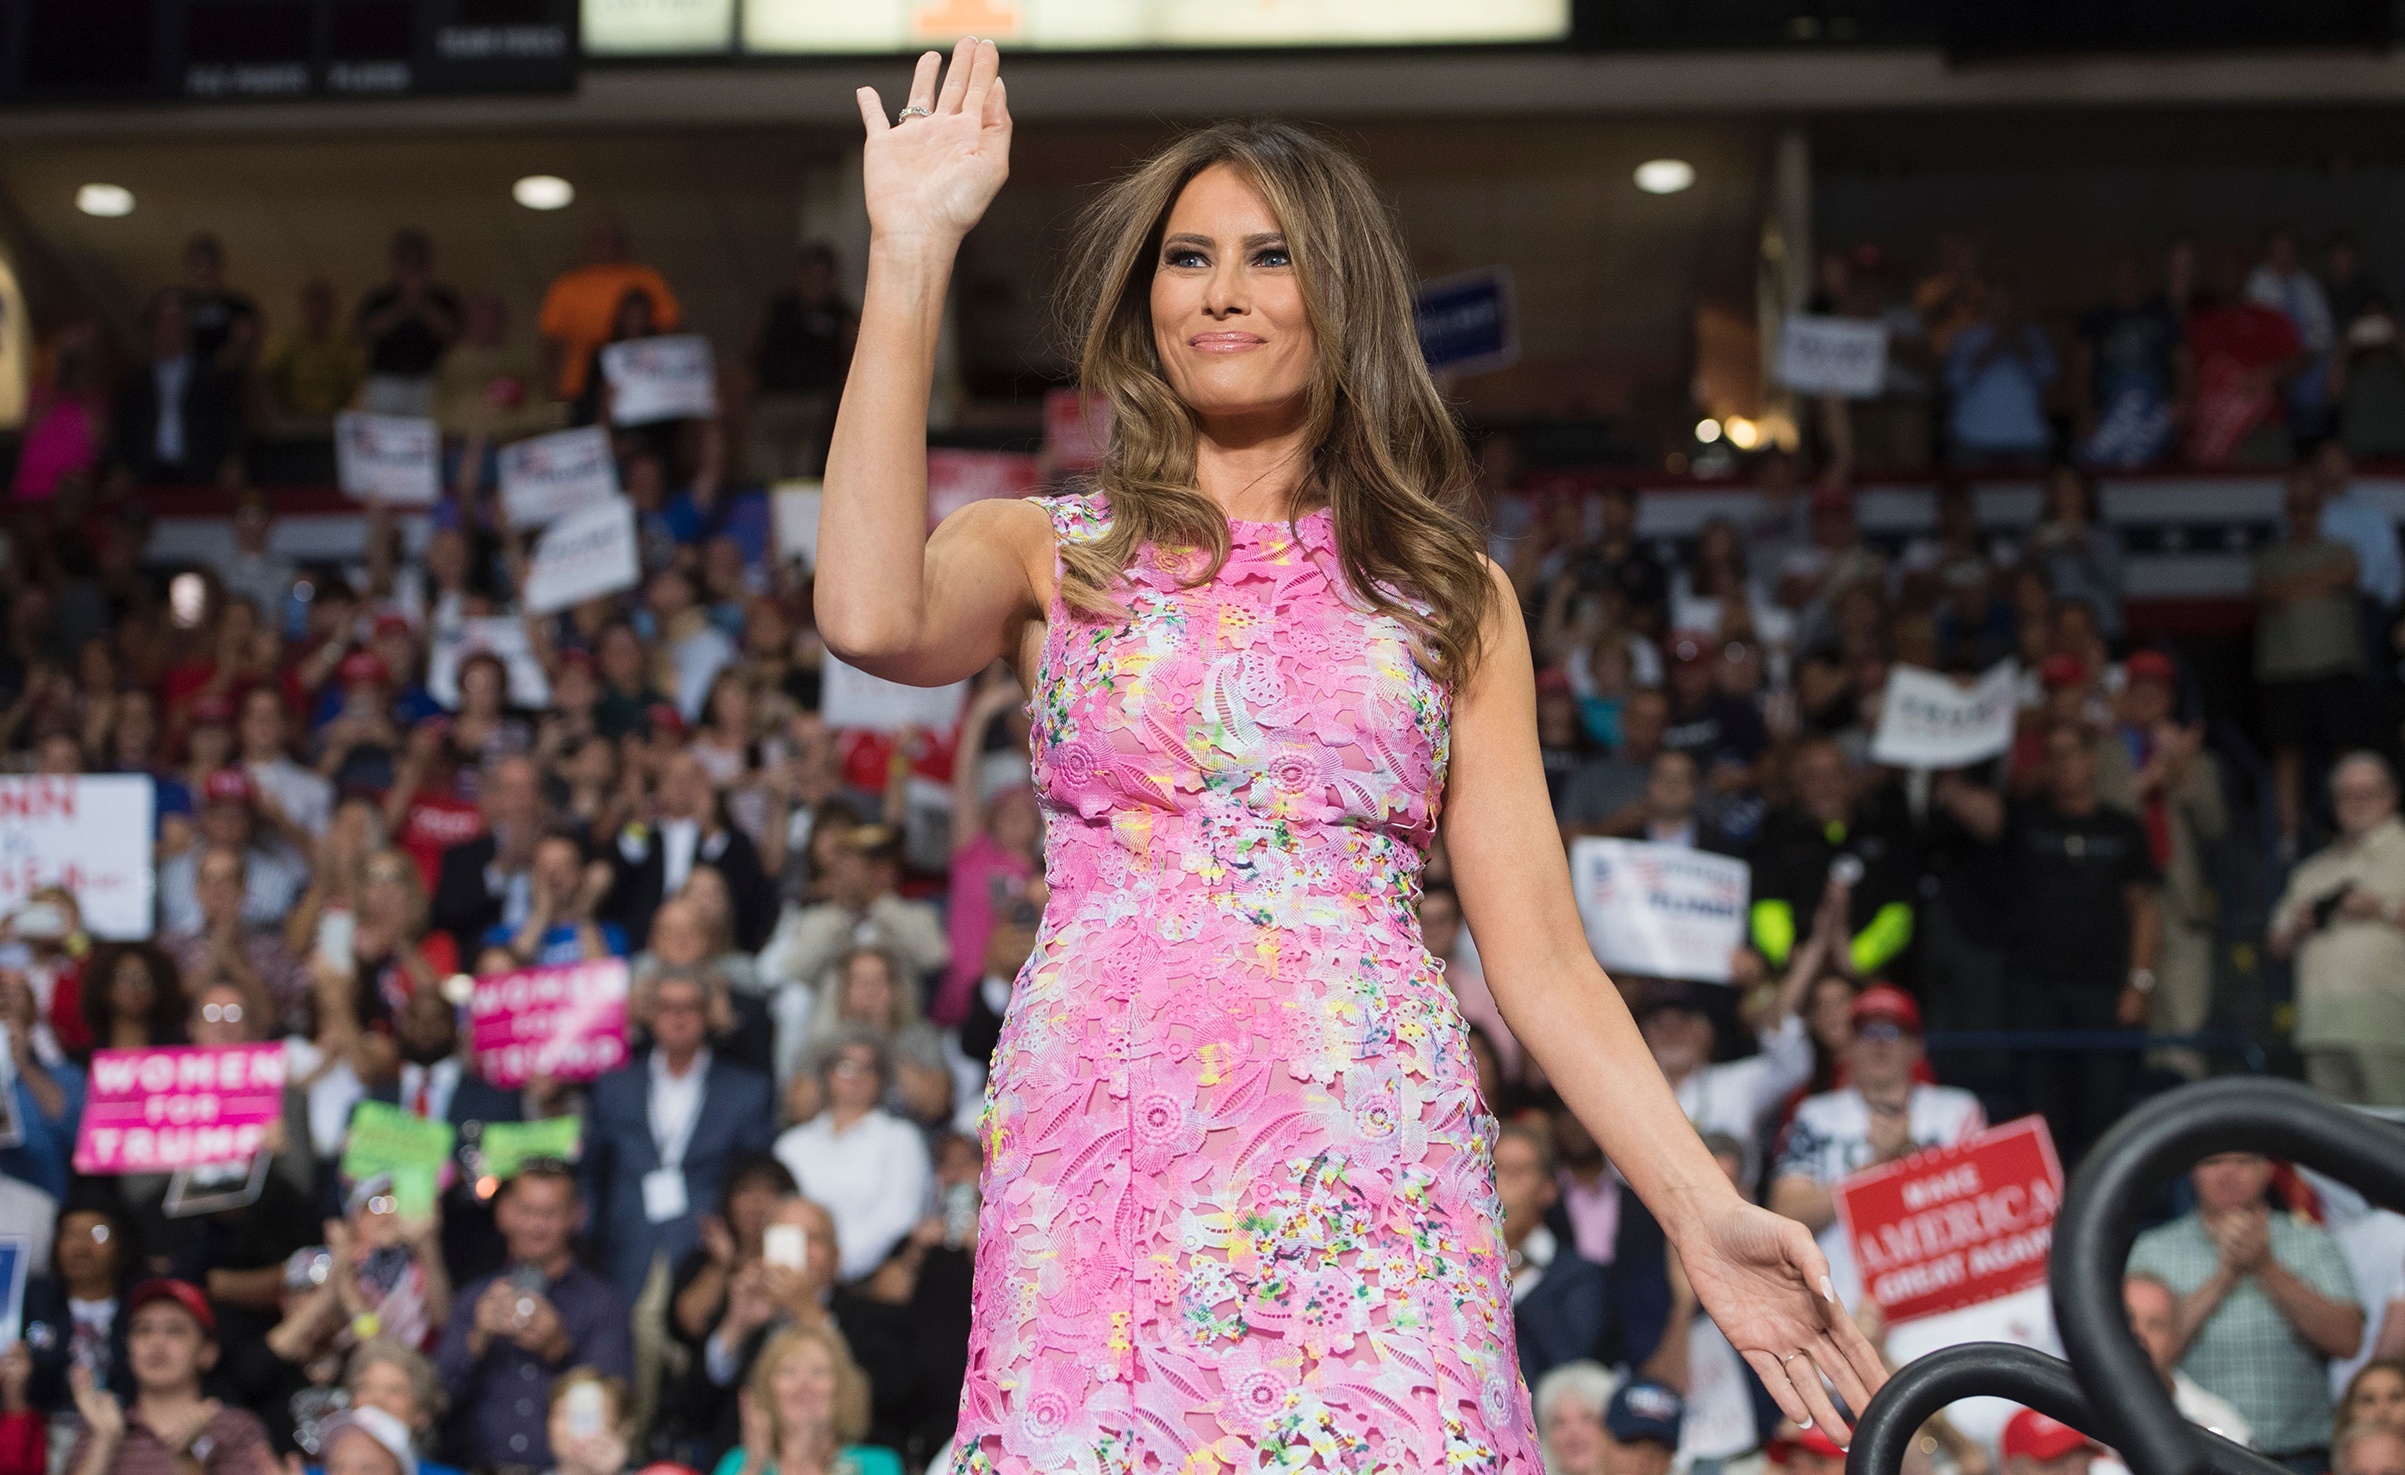 First lady Melania Trump wearing  a floral, pink Monique Lhuillier dress with waves during a Make America Great Again rally at the Covelli Centre in Youngstown, Ohio, July 25, 2017.